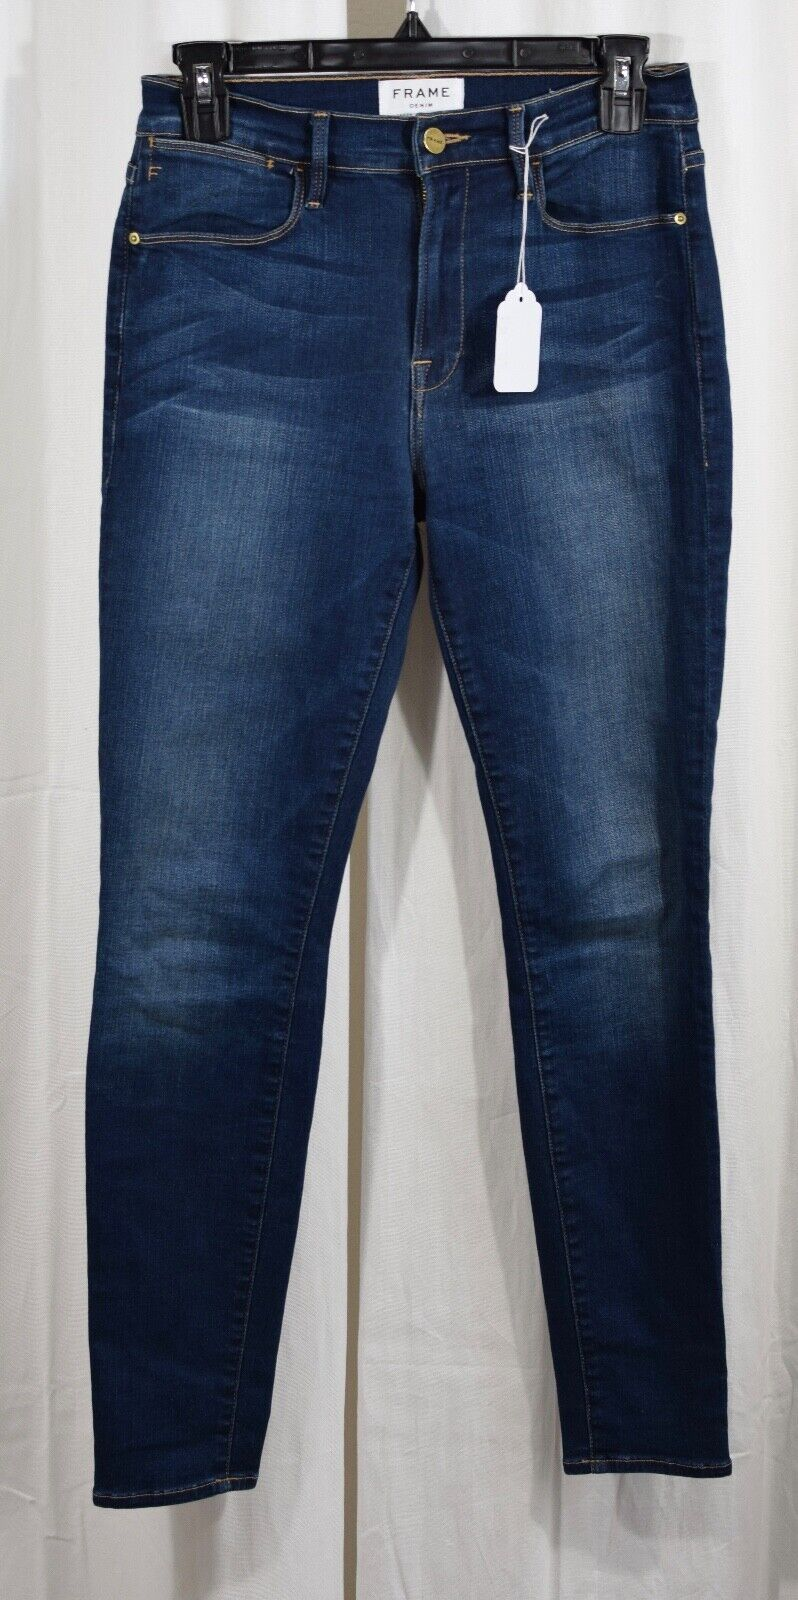 Frame Le High Ankle Skinny Jeans Columbia Road Size 26 x 28